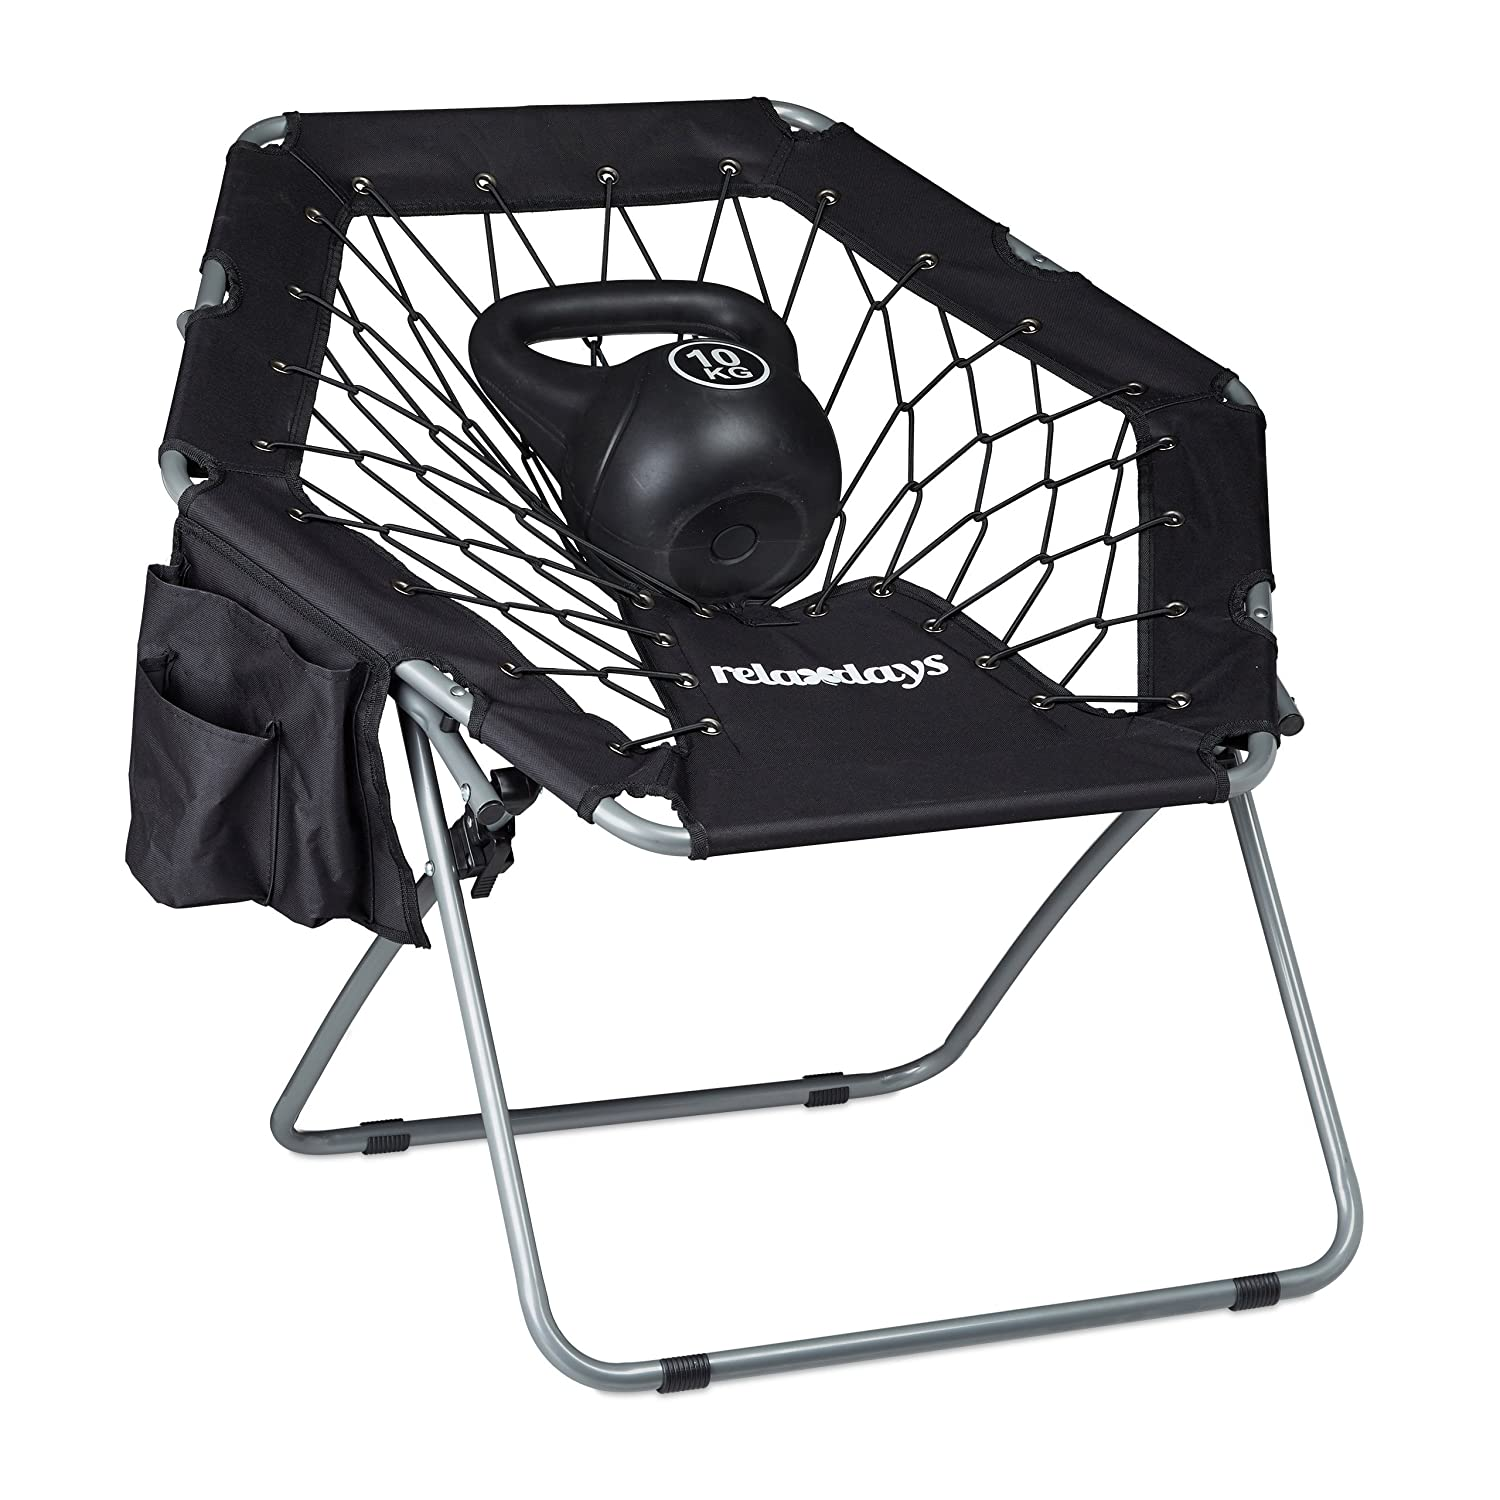 Relaxdays Webster Bungee Chair Elastic Spring System Foldable